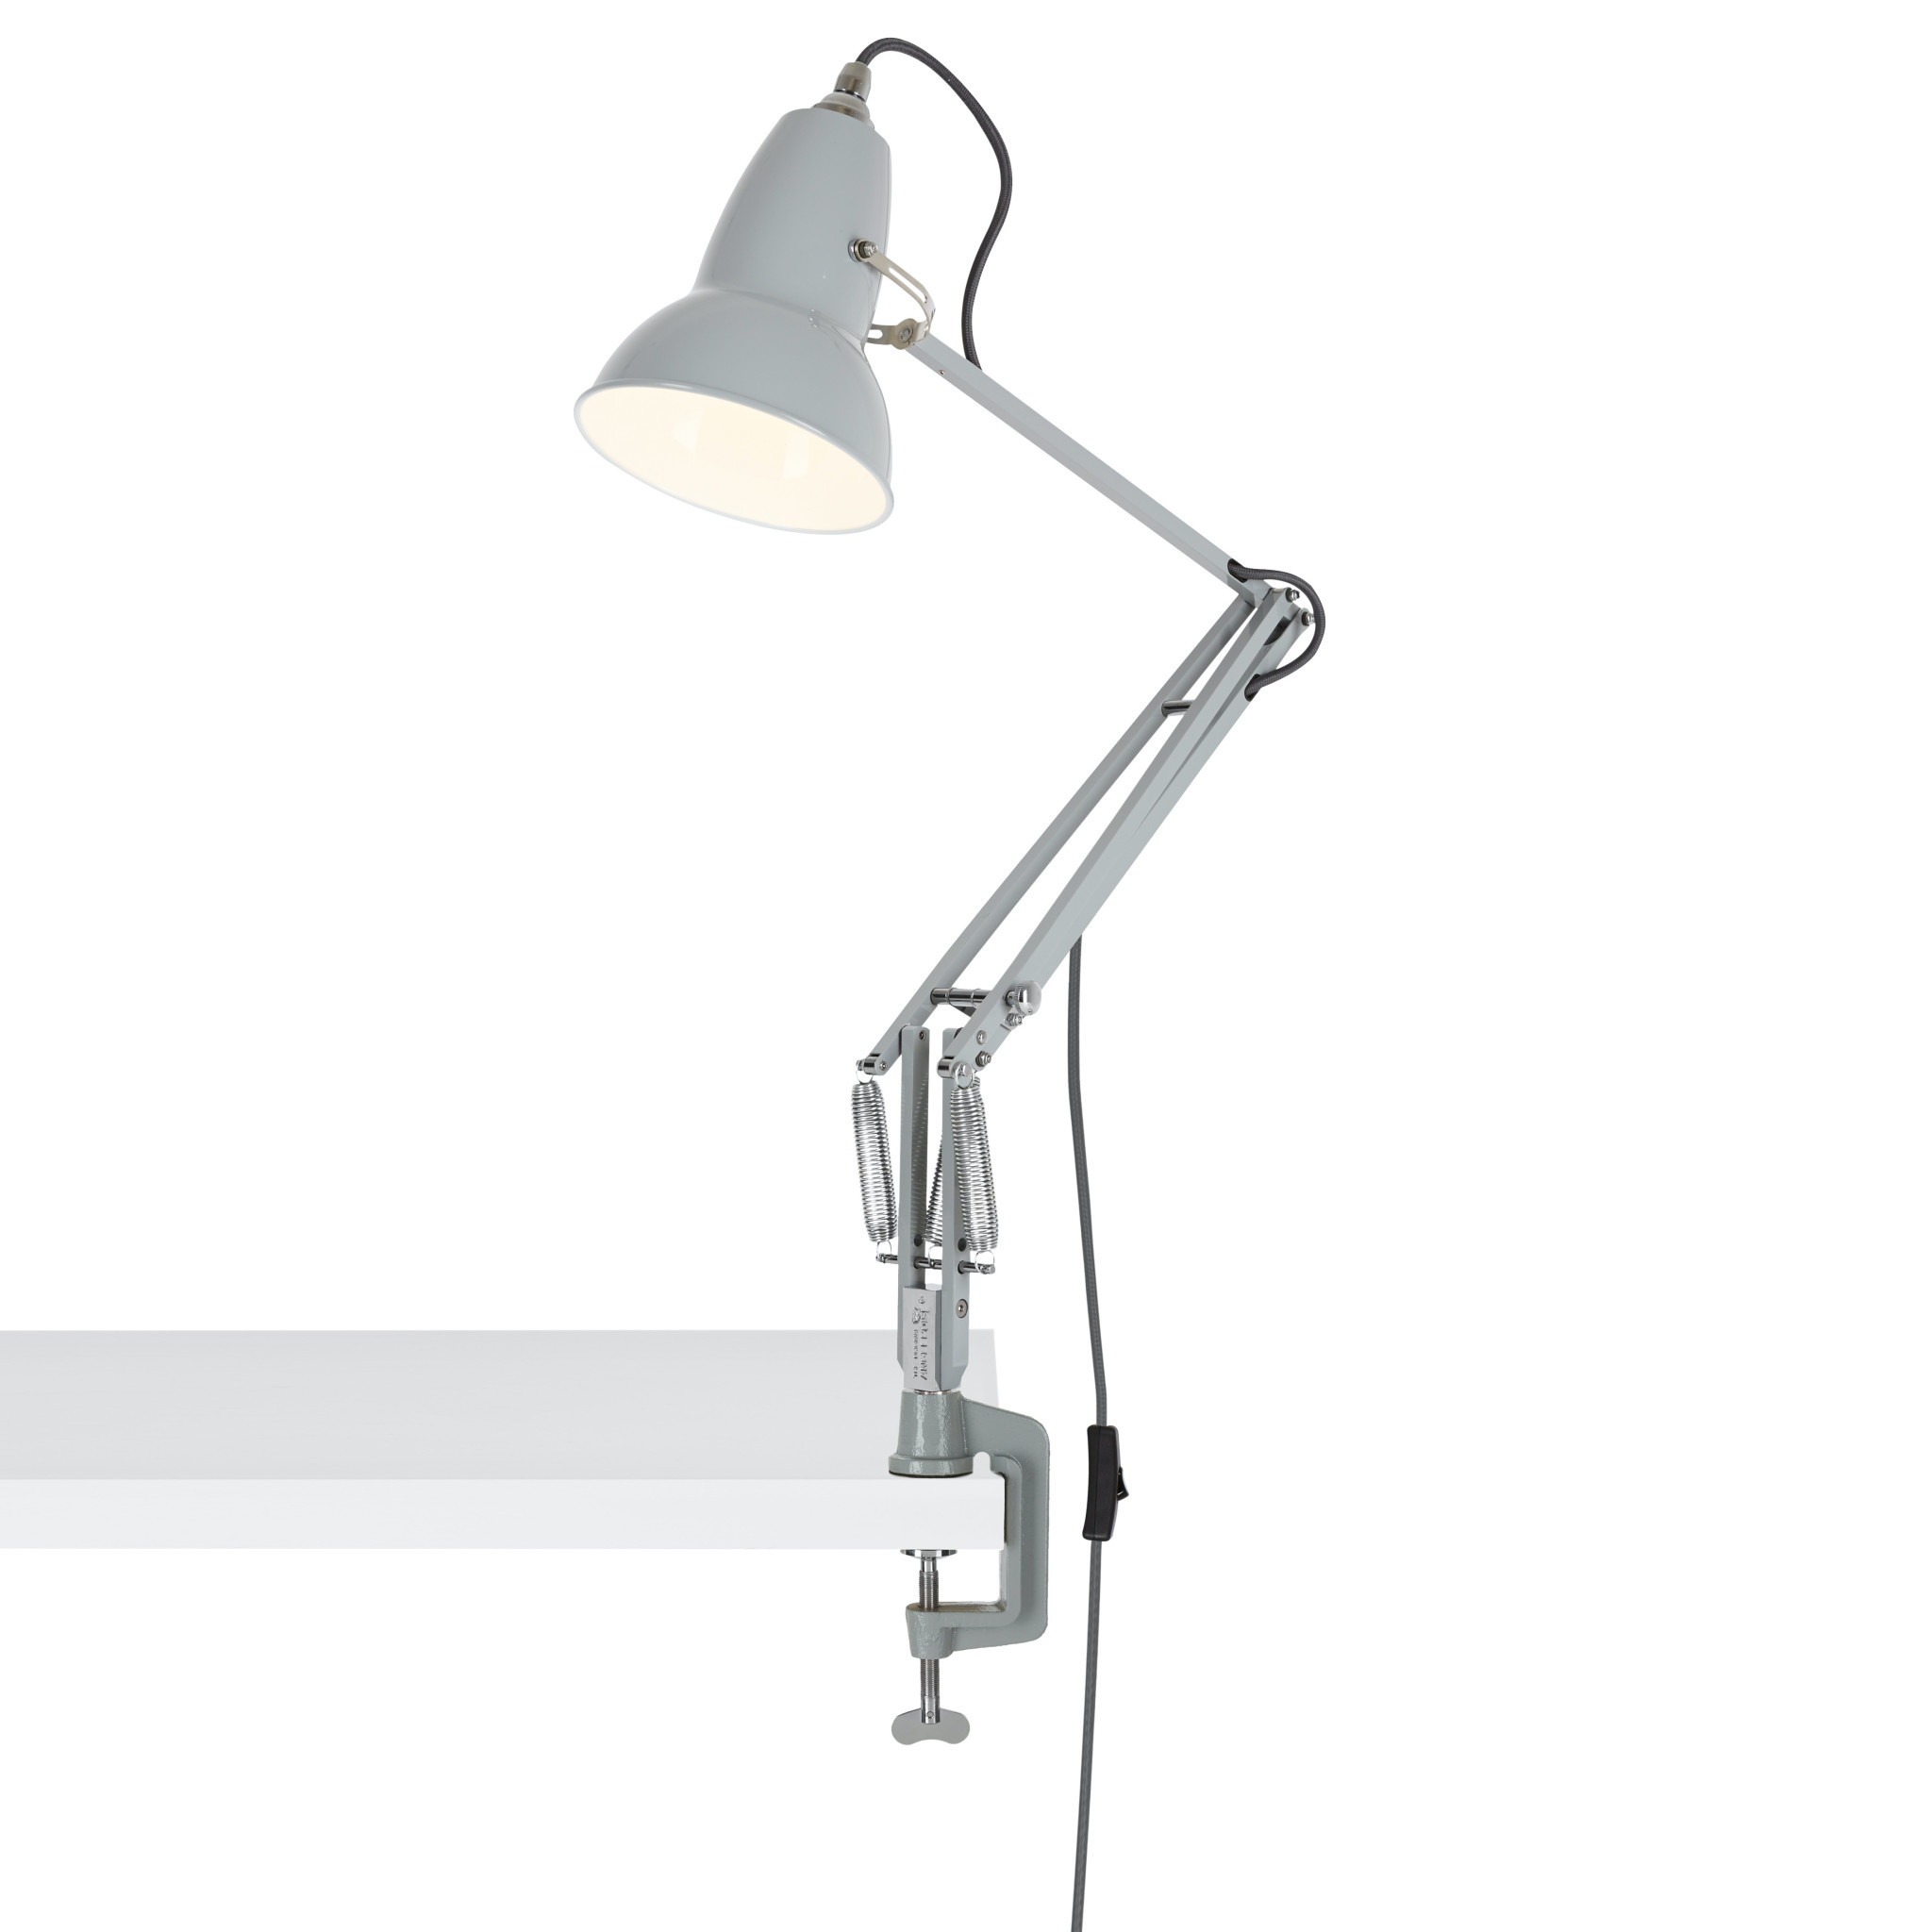 Anglepoise PREORDER Desk Mount Clamp for Original 1227 Series Lamps - Dove Grey